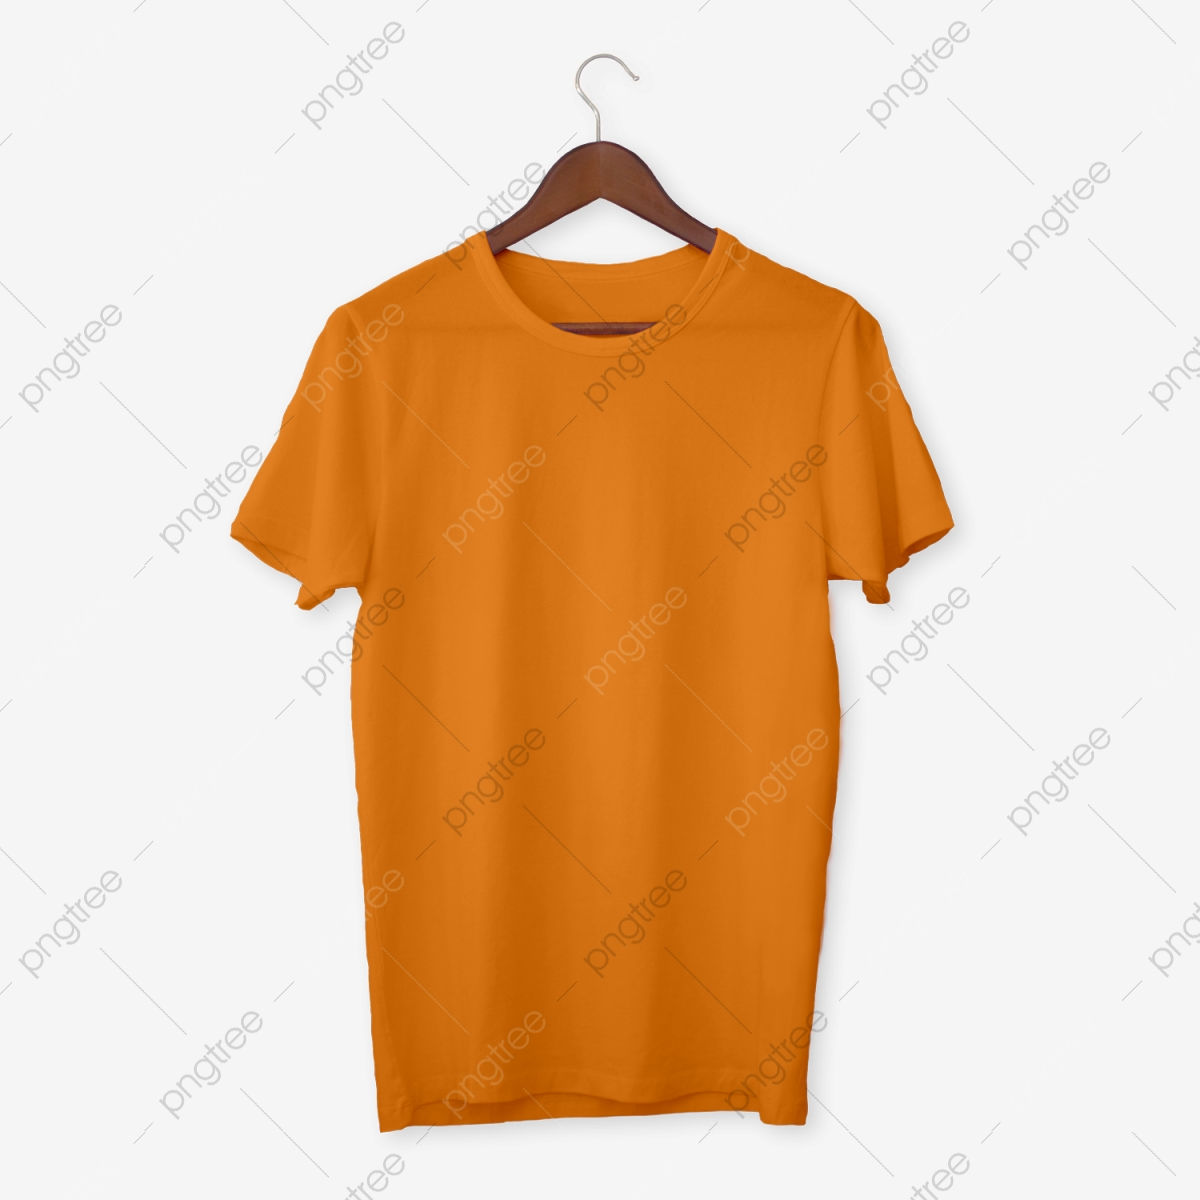 Orange T Shirt Mockup, T Shirts, Mens, White PNG Transparent.